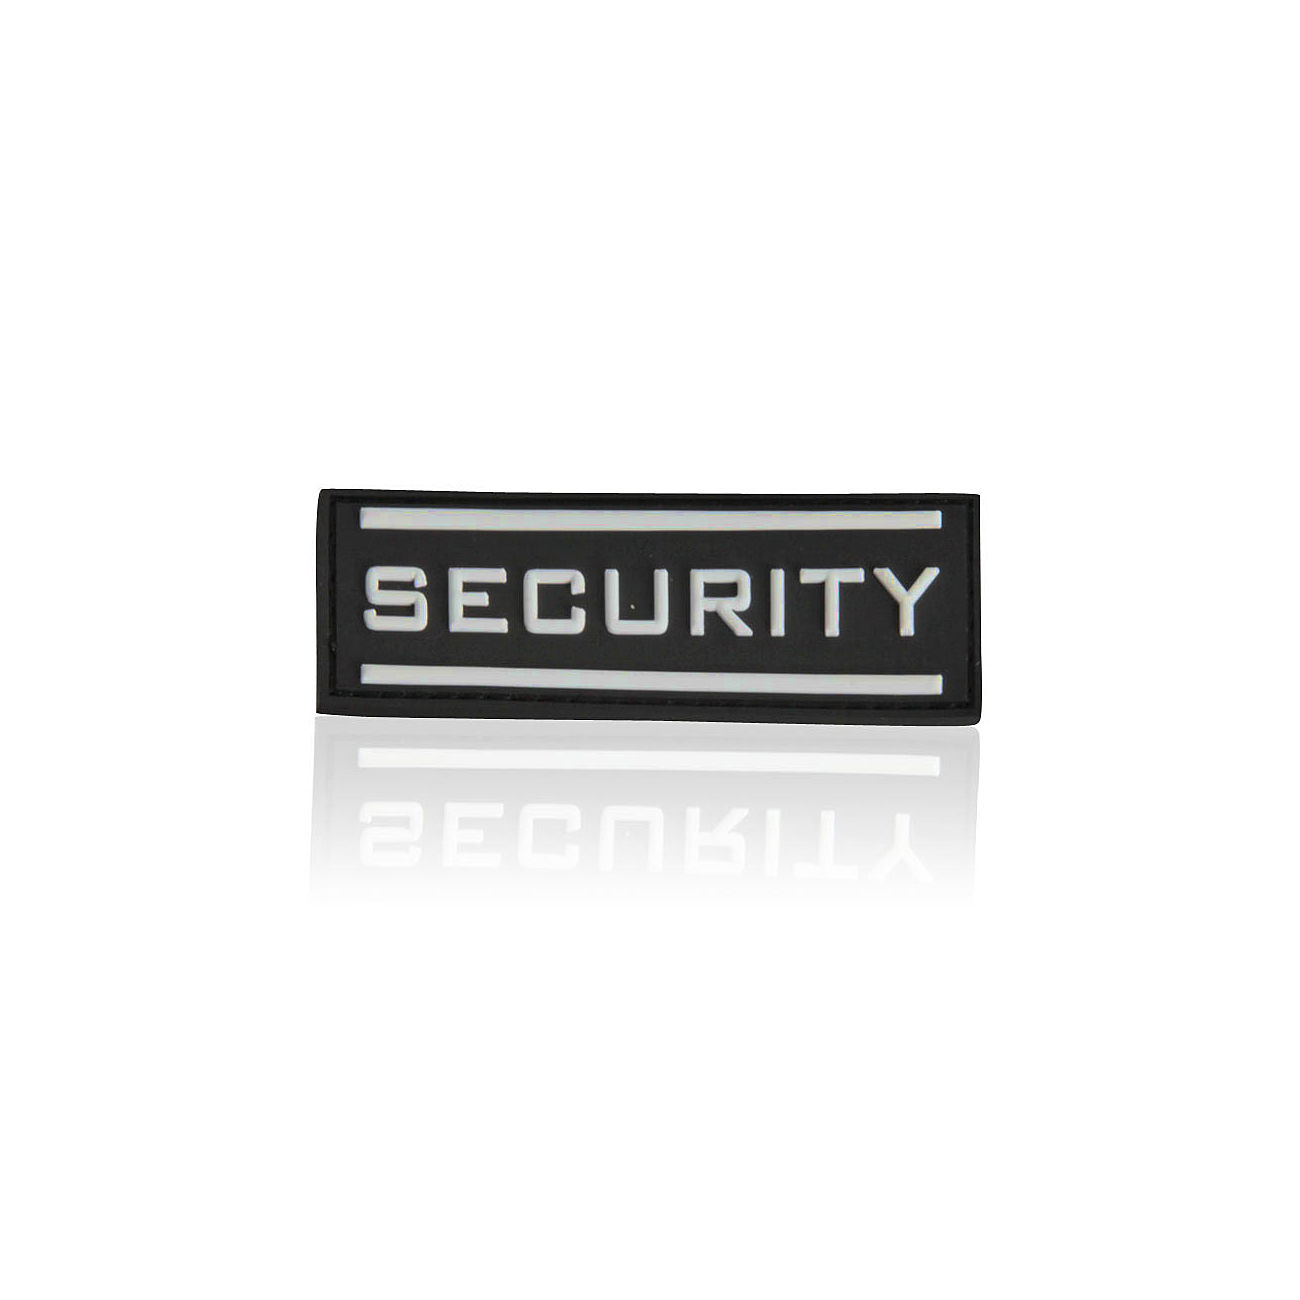 3D Rubber Patch Security gross nachleuchtend 0